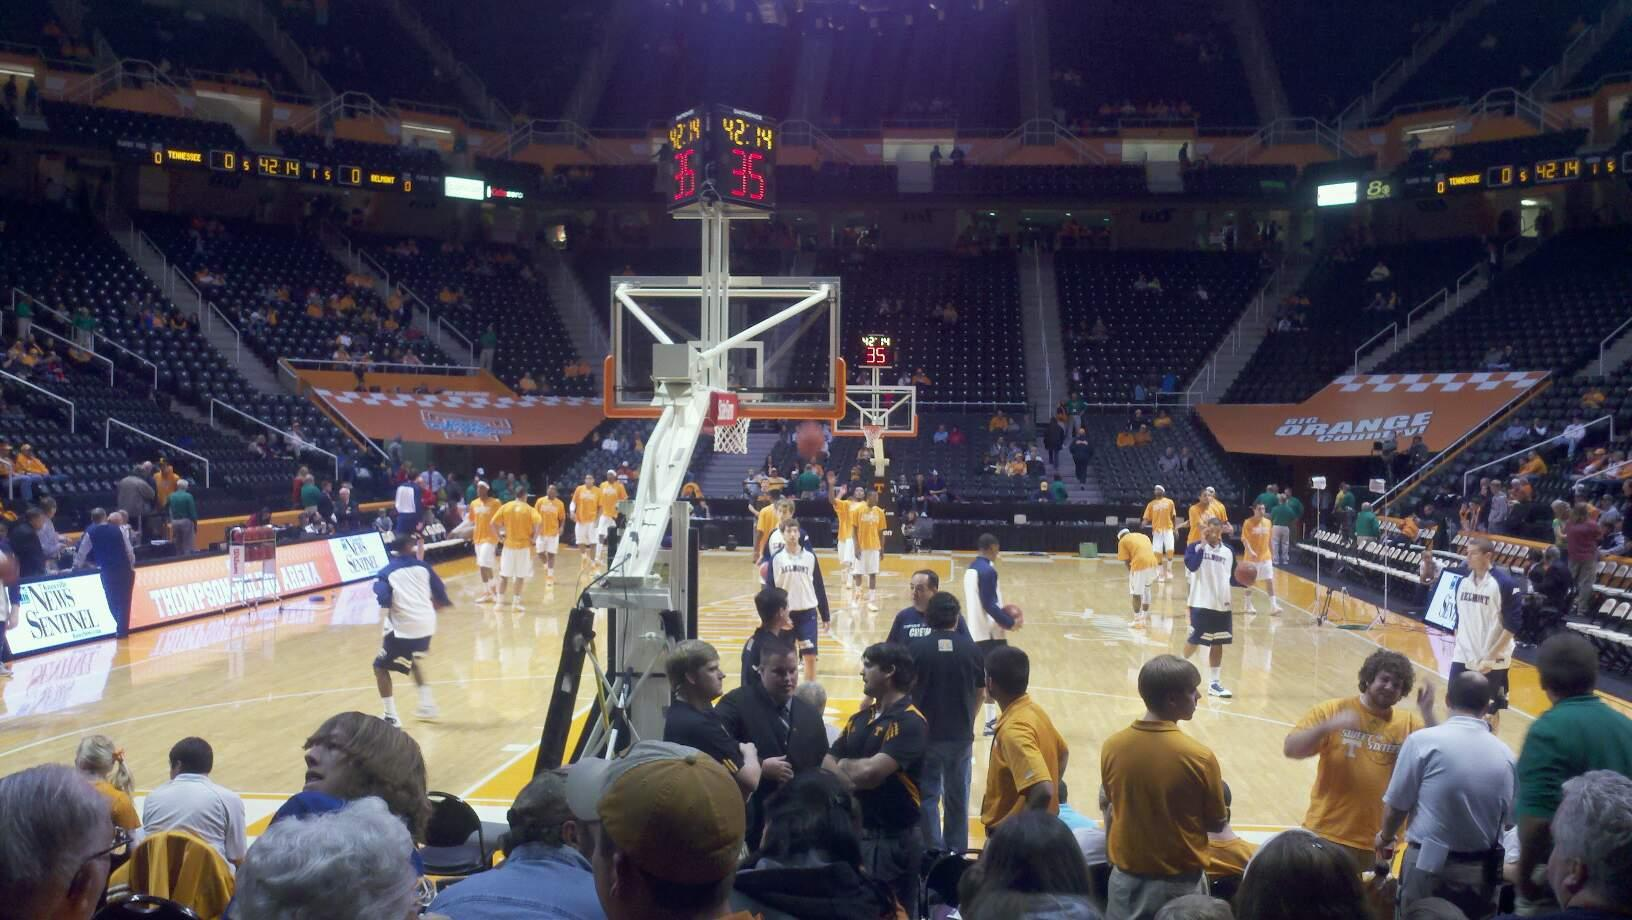 Thompson-Boling Arena Section 129 Row 2 Seat 5